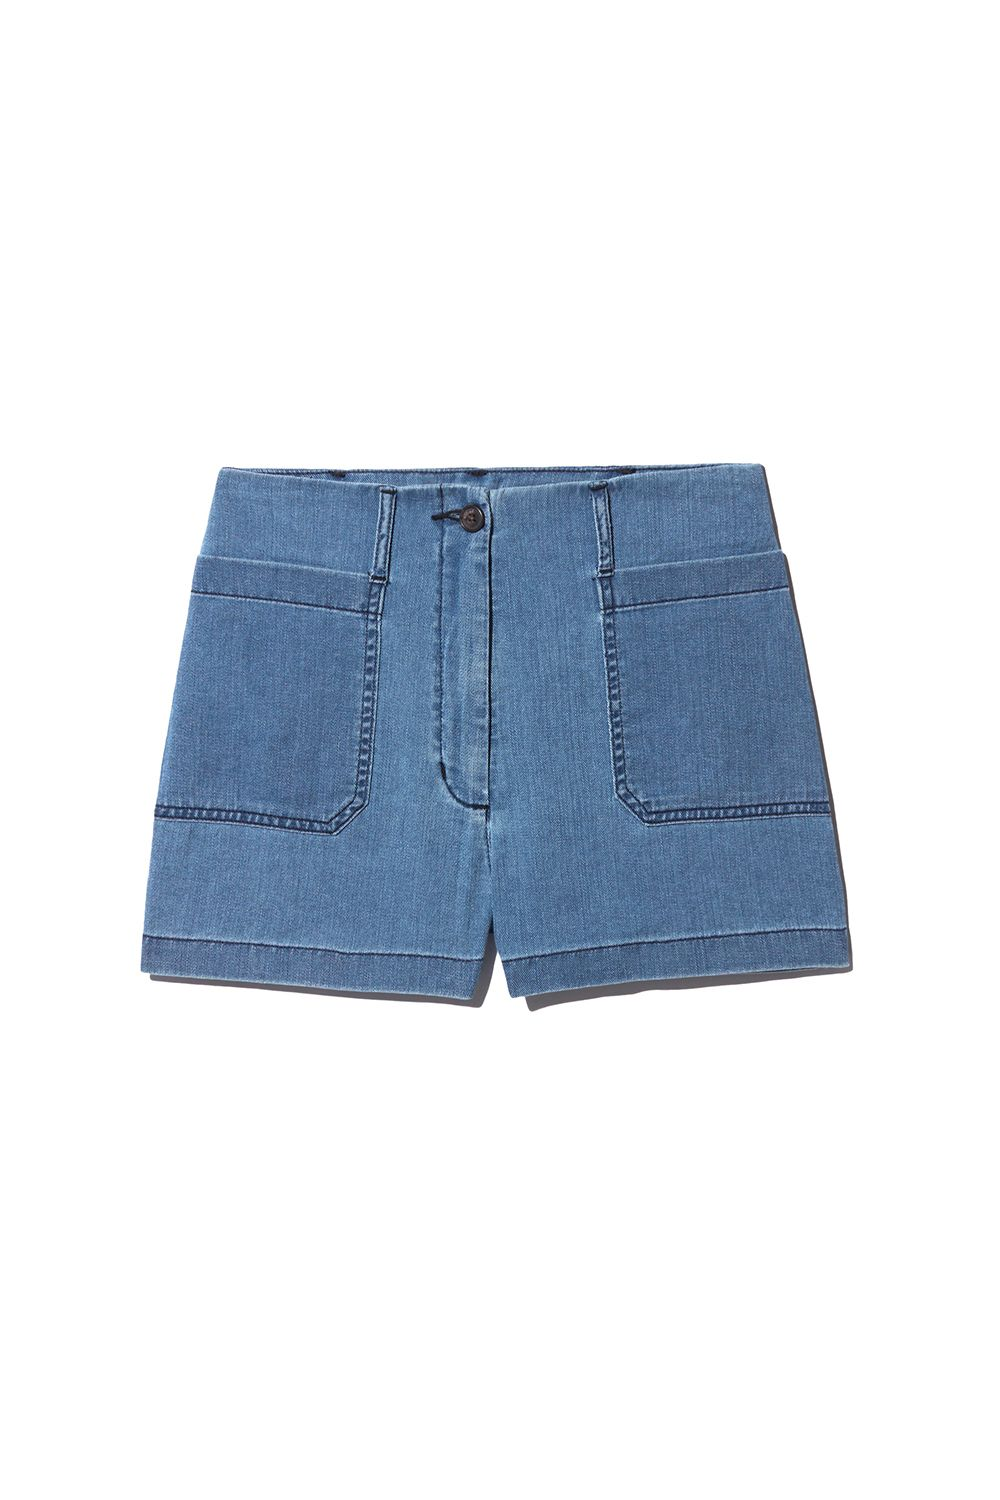 "<p>Also v. French with the high rise and symmetry, but in a more relaxed Bardot way. (Though you wouldn't want to get melted fior di latte on these either.) </p><p>Aritzia, $65; <a href=""http://us.aritzia.com/product/naves-short/59411.html?dwvar_59411_color=3555"" target=""_blank"" data-tracking-id=""recirc-text-link"">aritzia.com</a>.</p>"